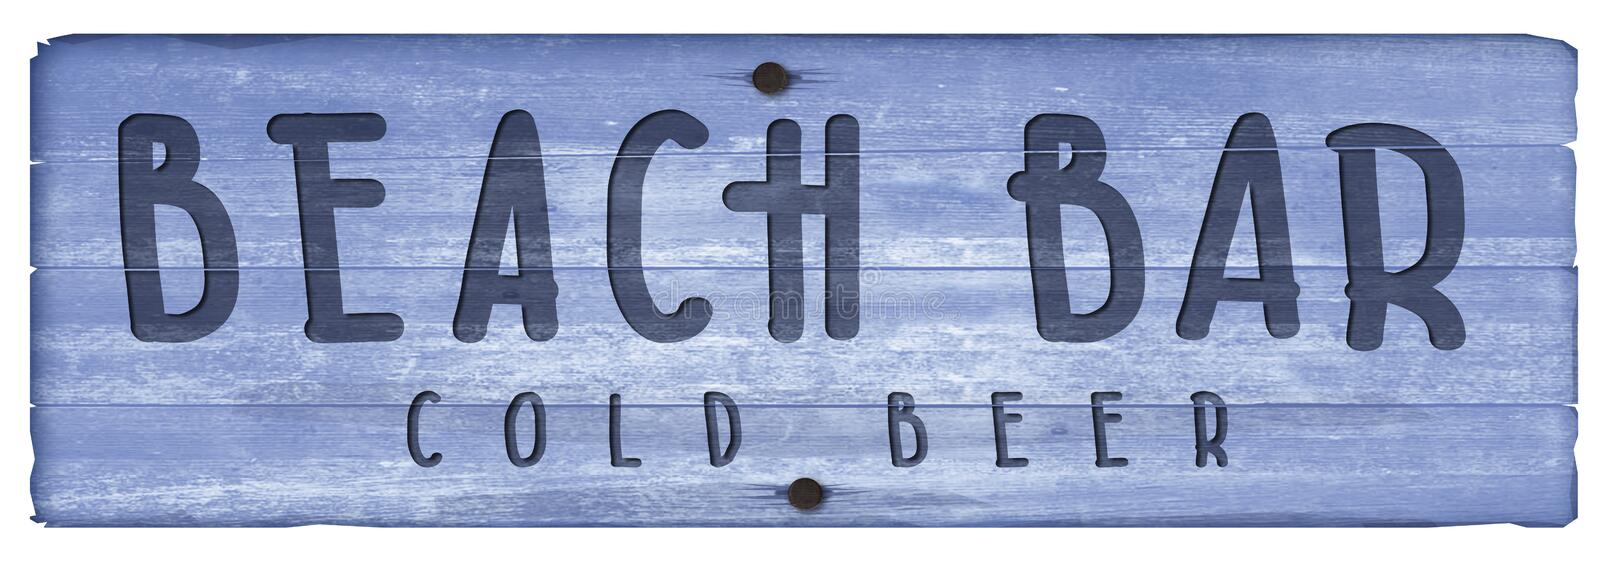 Beach Bar Wooden Plaque Sign vintage cocktails royalty free illustration